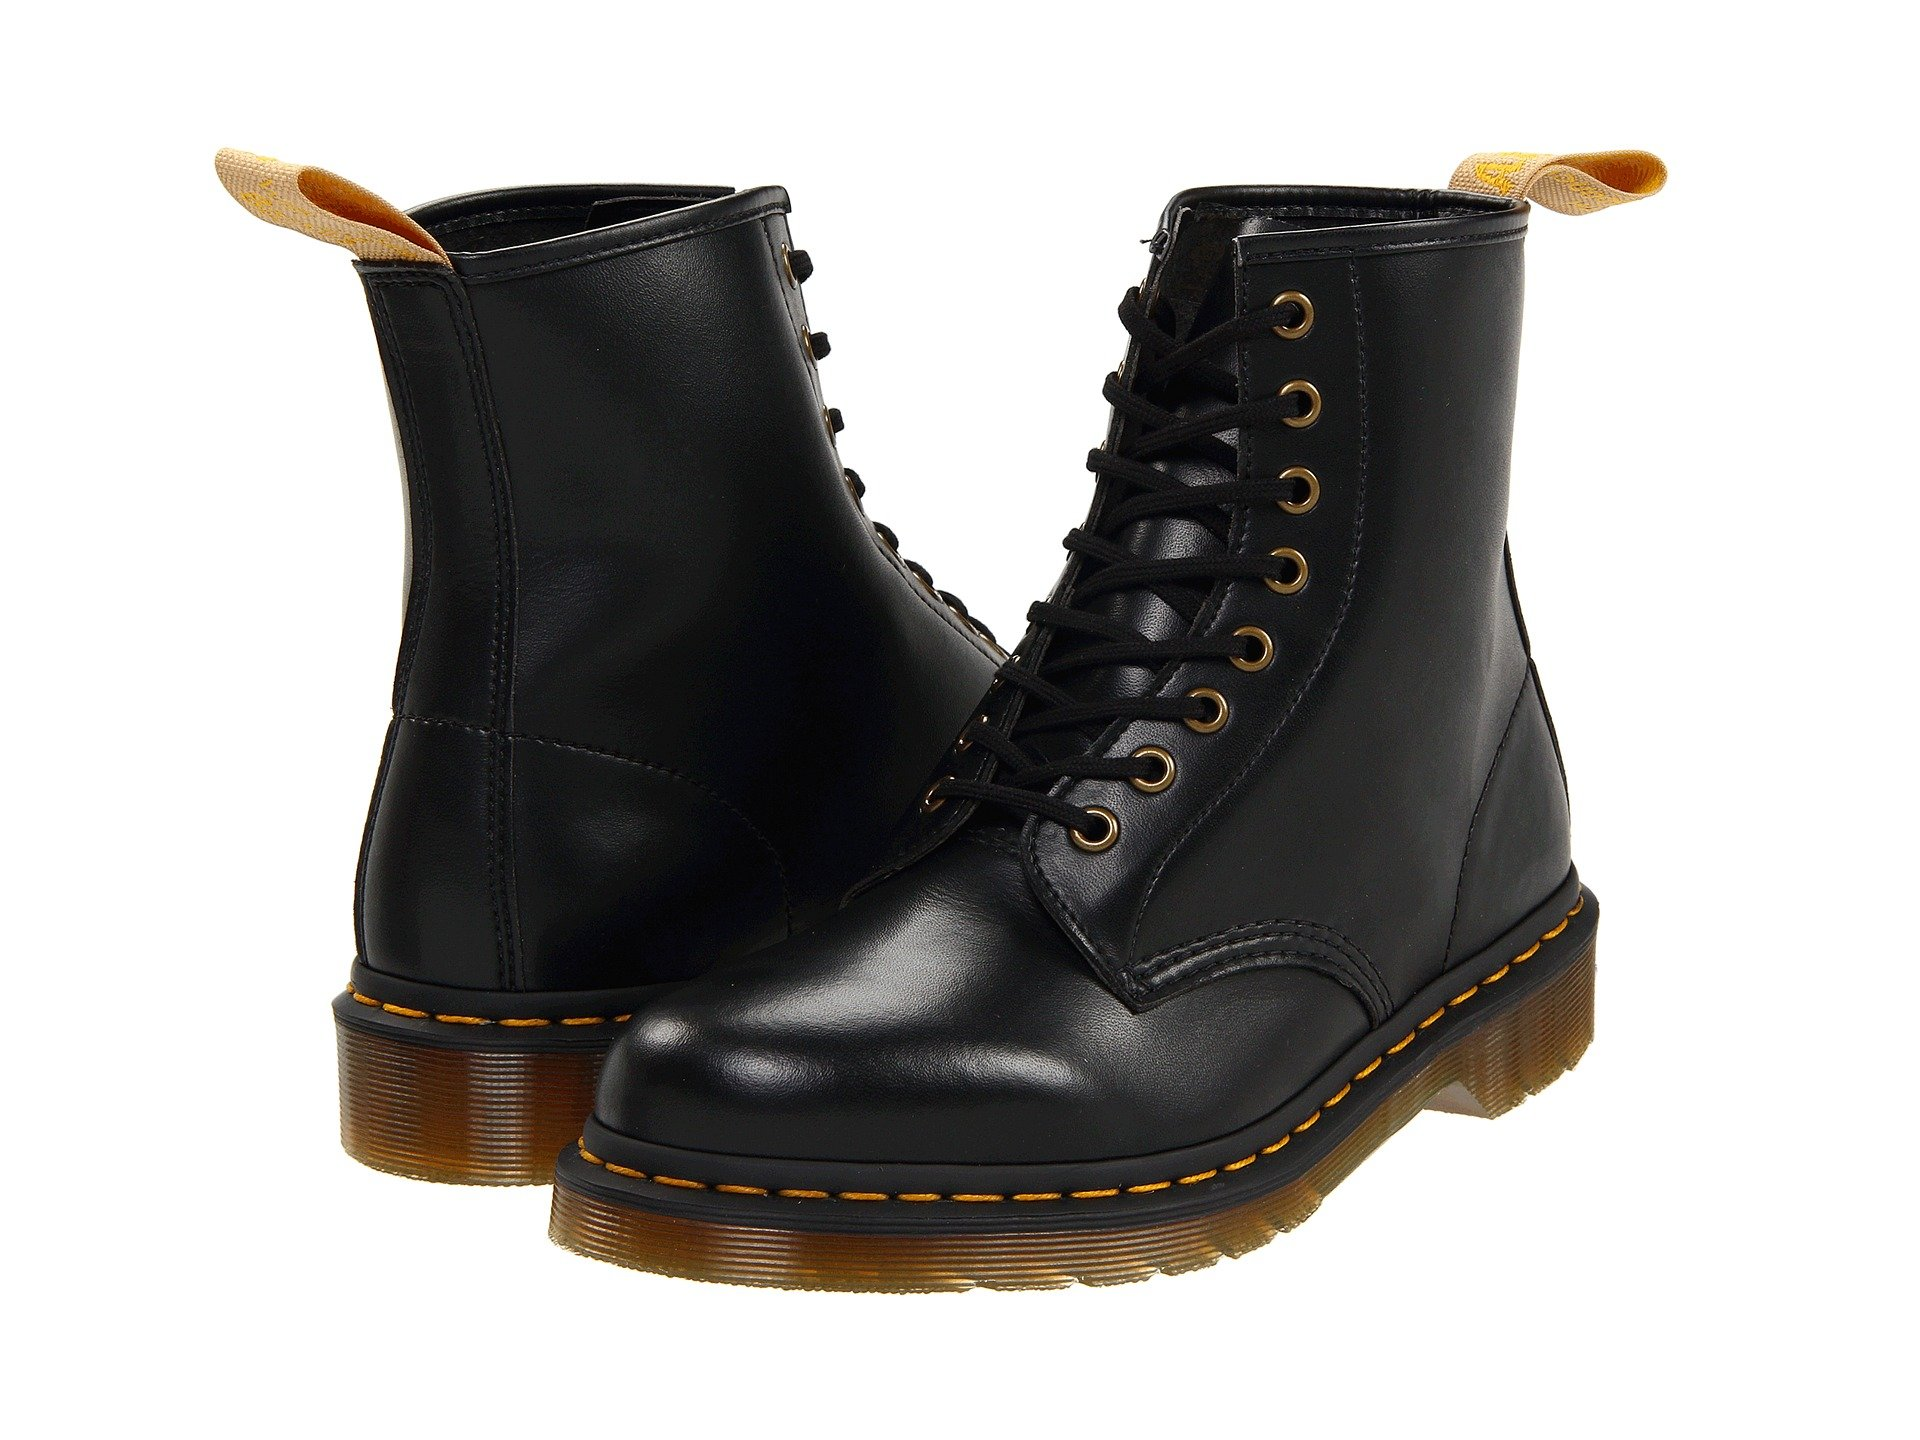 Dr. Martens1460 UNKNOWN - Lace-up boots - black smooth 5nNsBo3bJ